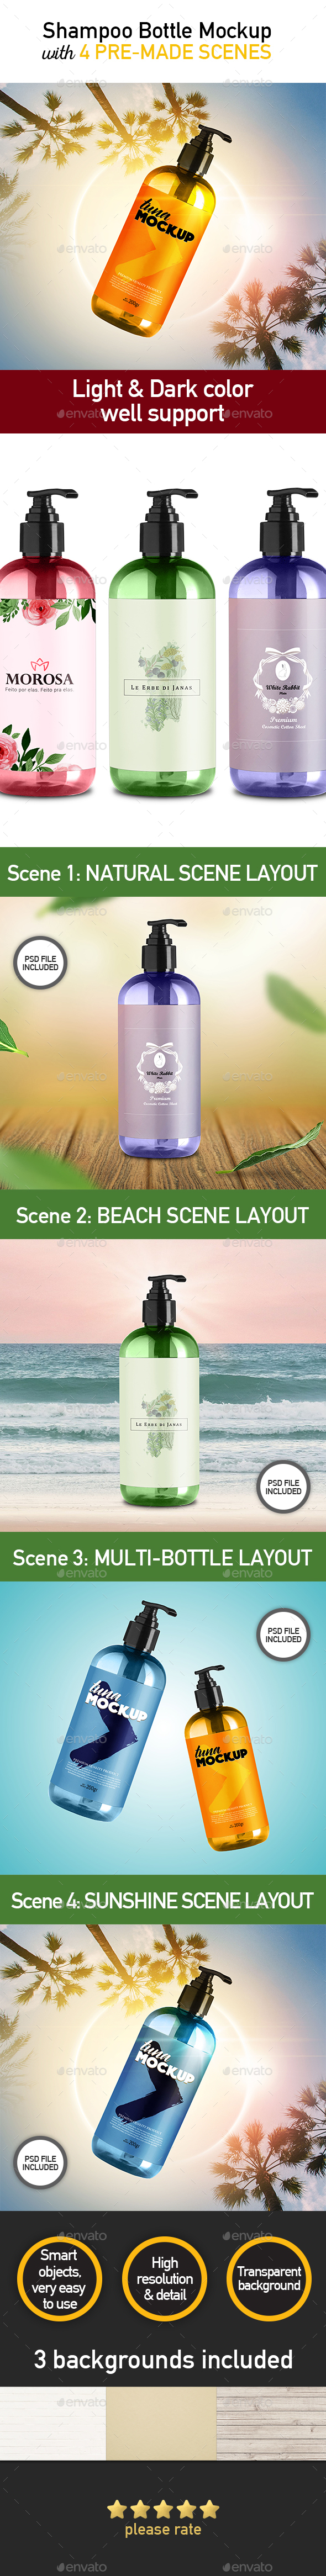 Set 4 Mockup - Shampoo Pump Bottle - Beauty Packaging